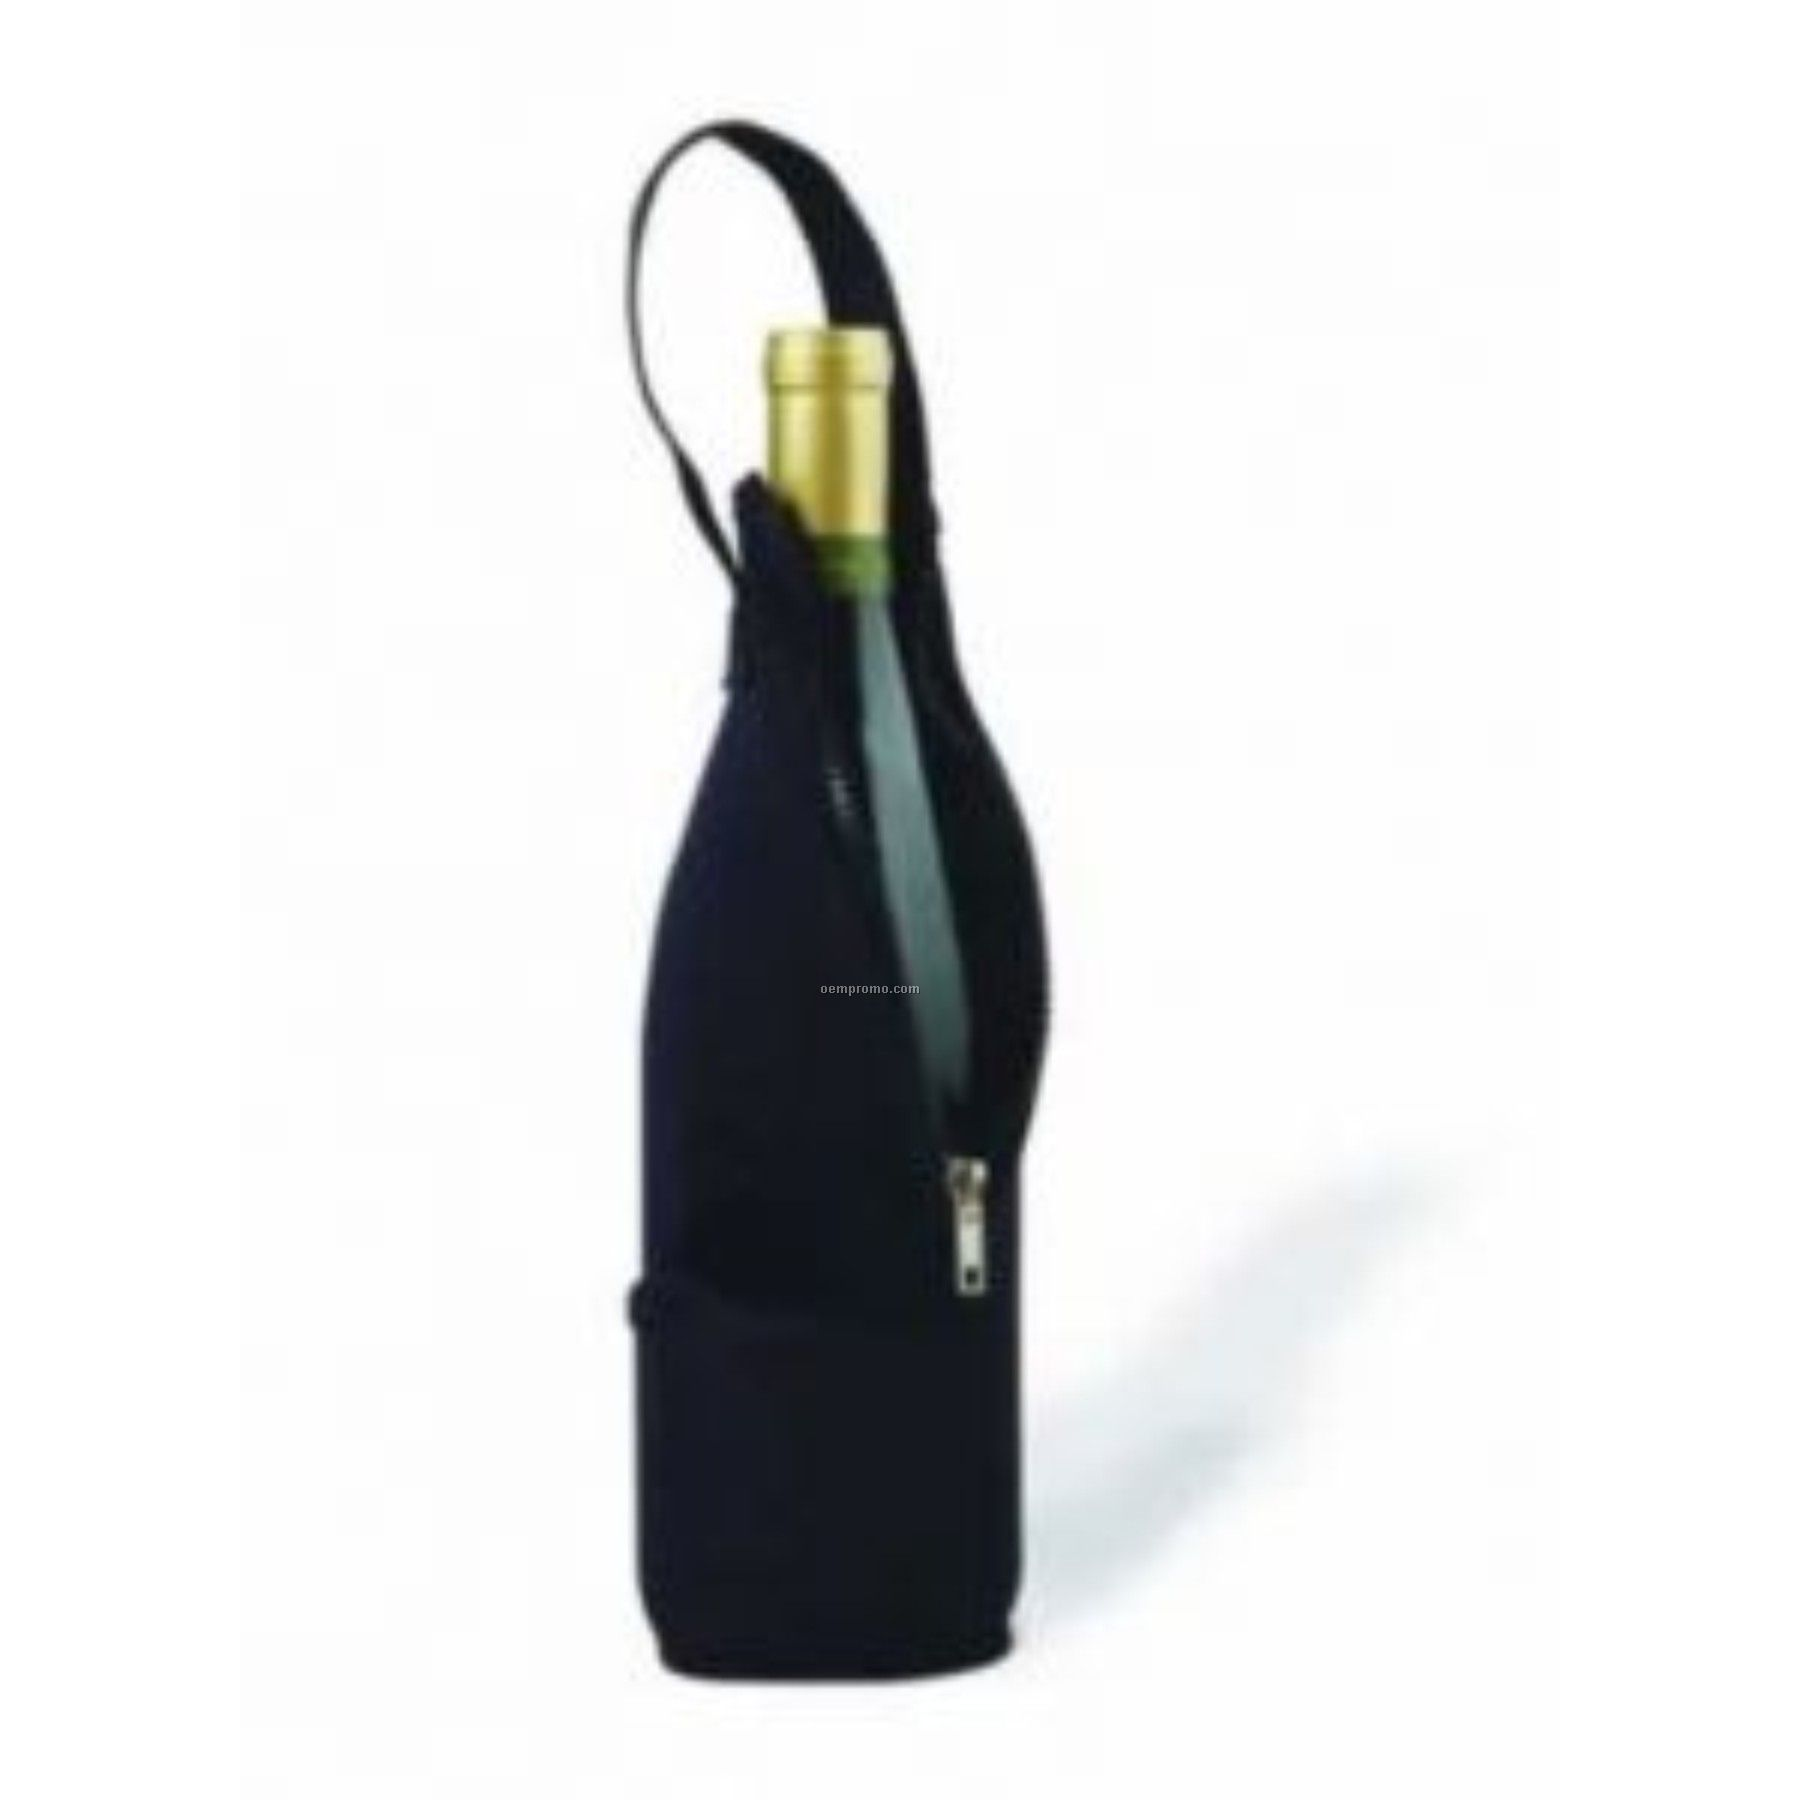 Zip-n-go Neoprene Wine Bag